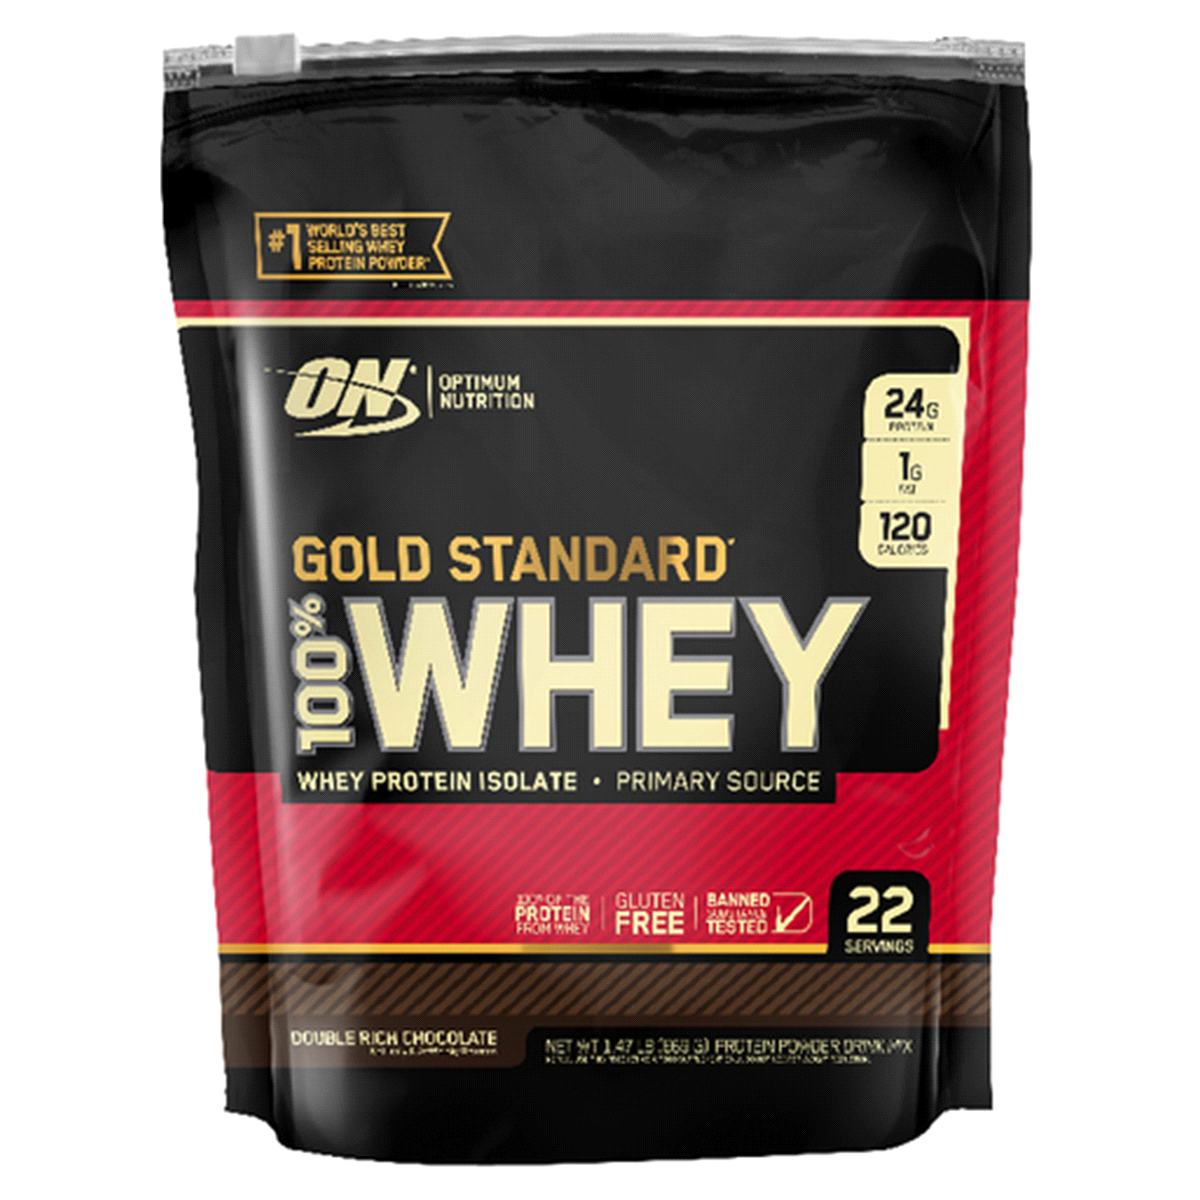 Optimum Nutrition Gold Standard Whey Protein Isolate, Double Rich Chocolate.